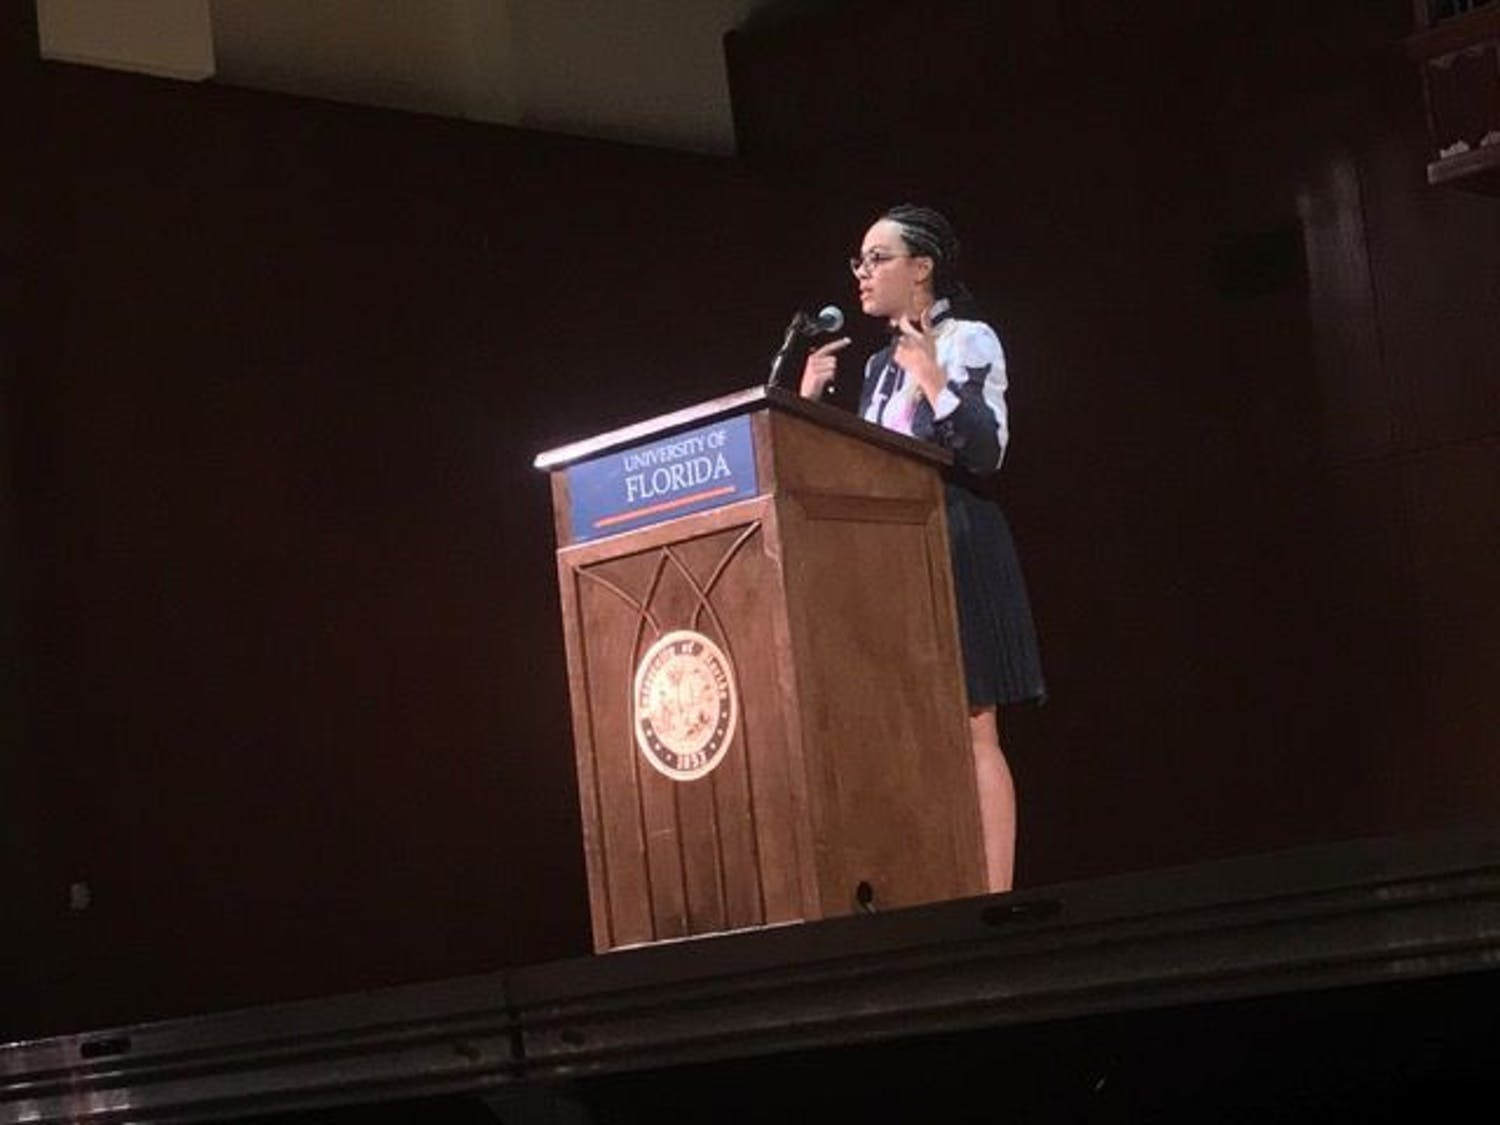 Rye, a liberal political commentator on CNN and an NPR political analyst, was the keynote speaker at Black History Month's Closing Ceremony and Women's History Month's Opening Ceremony on Tuesday.